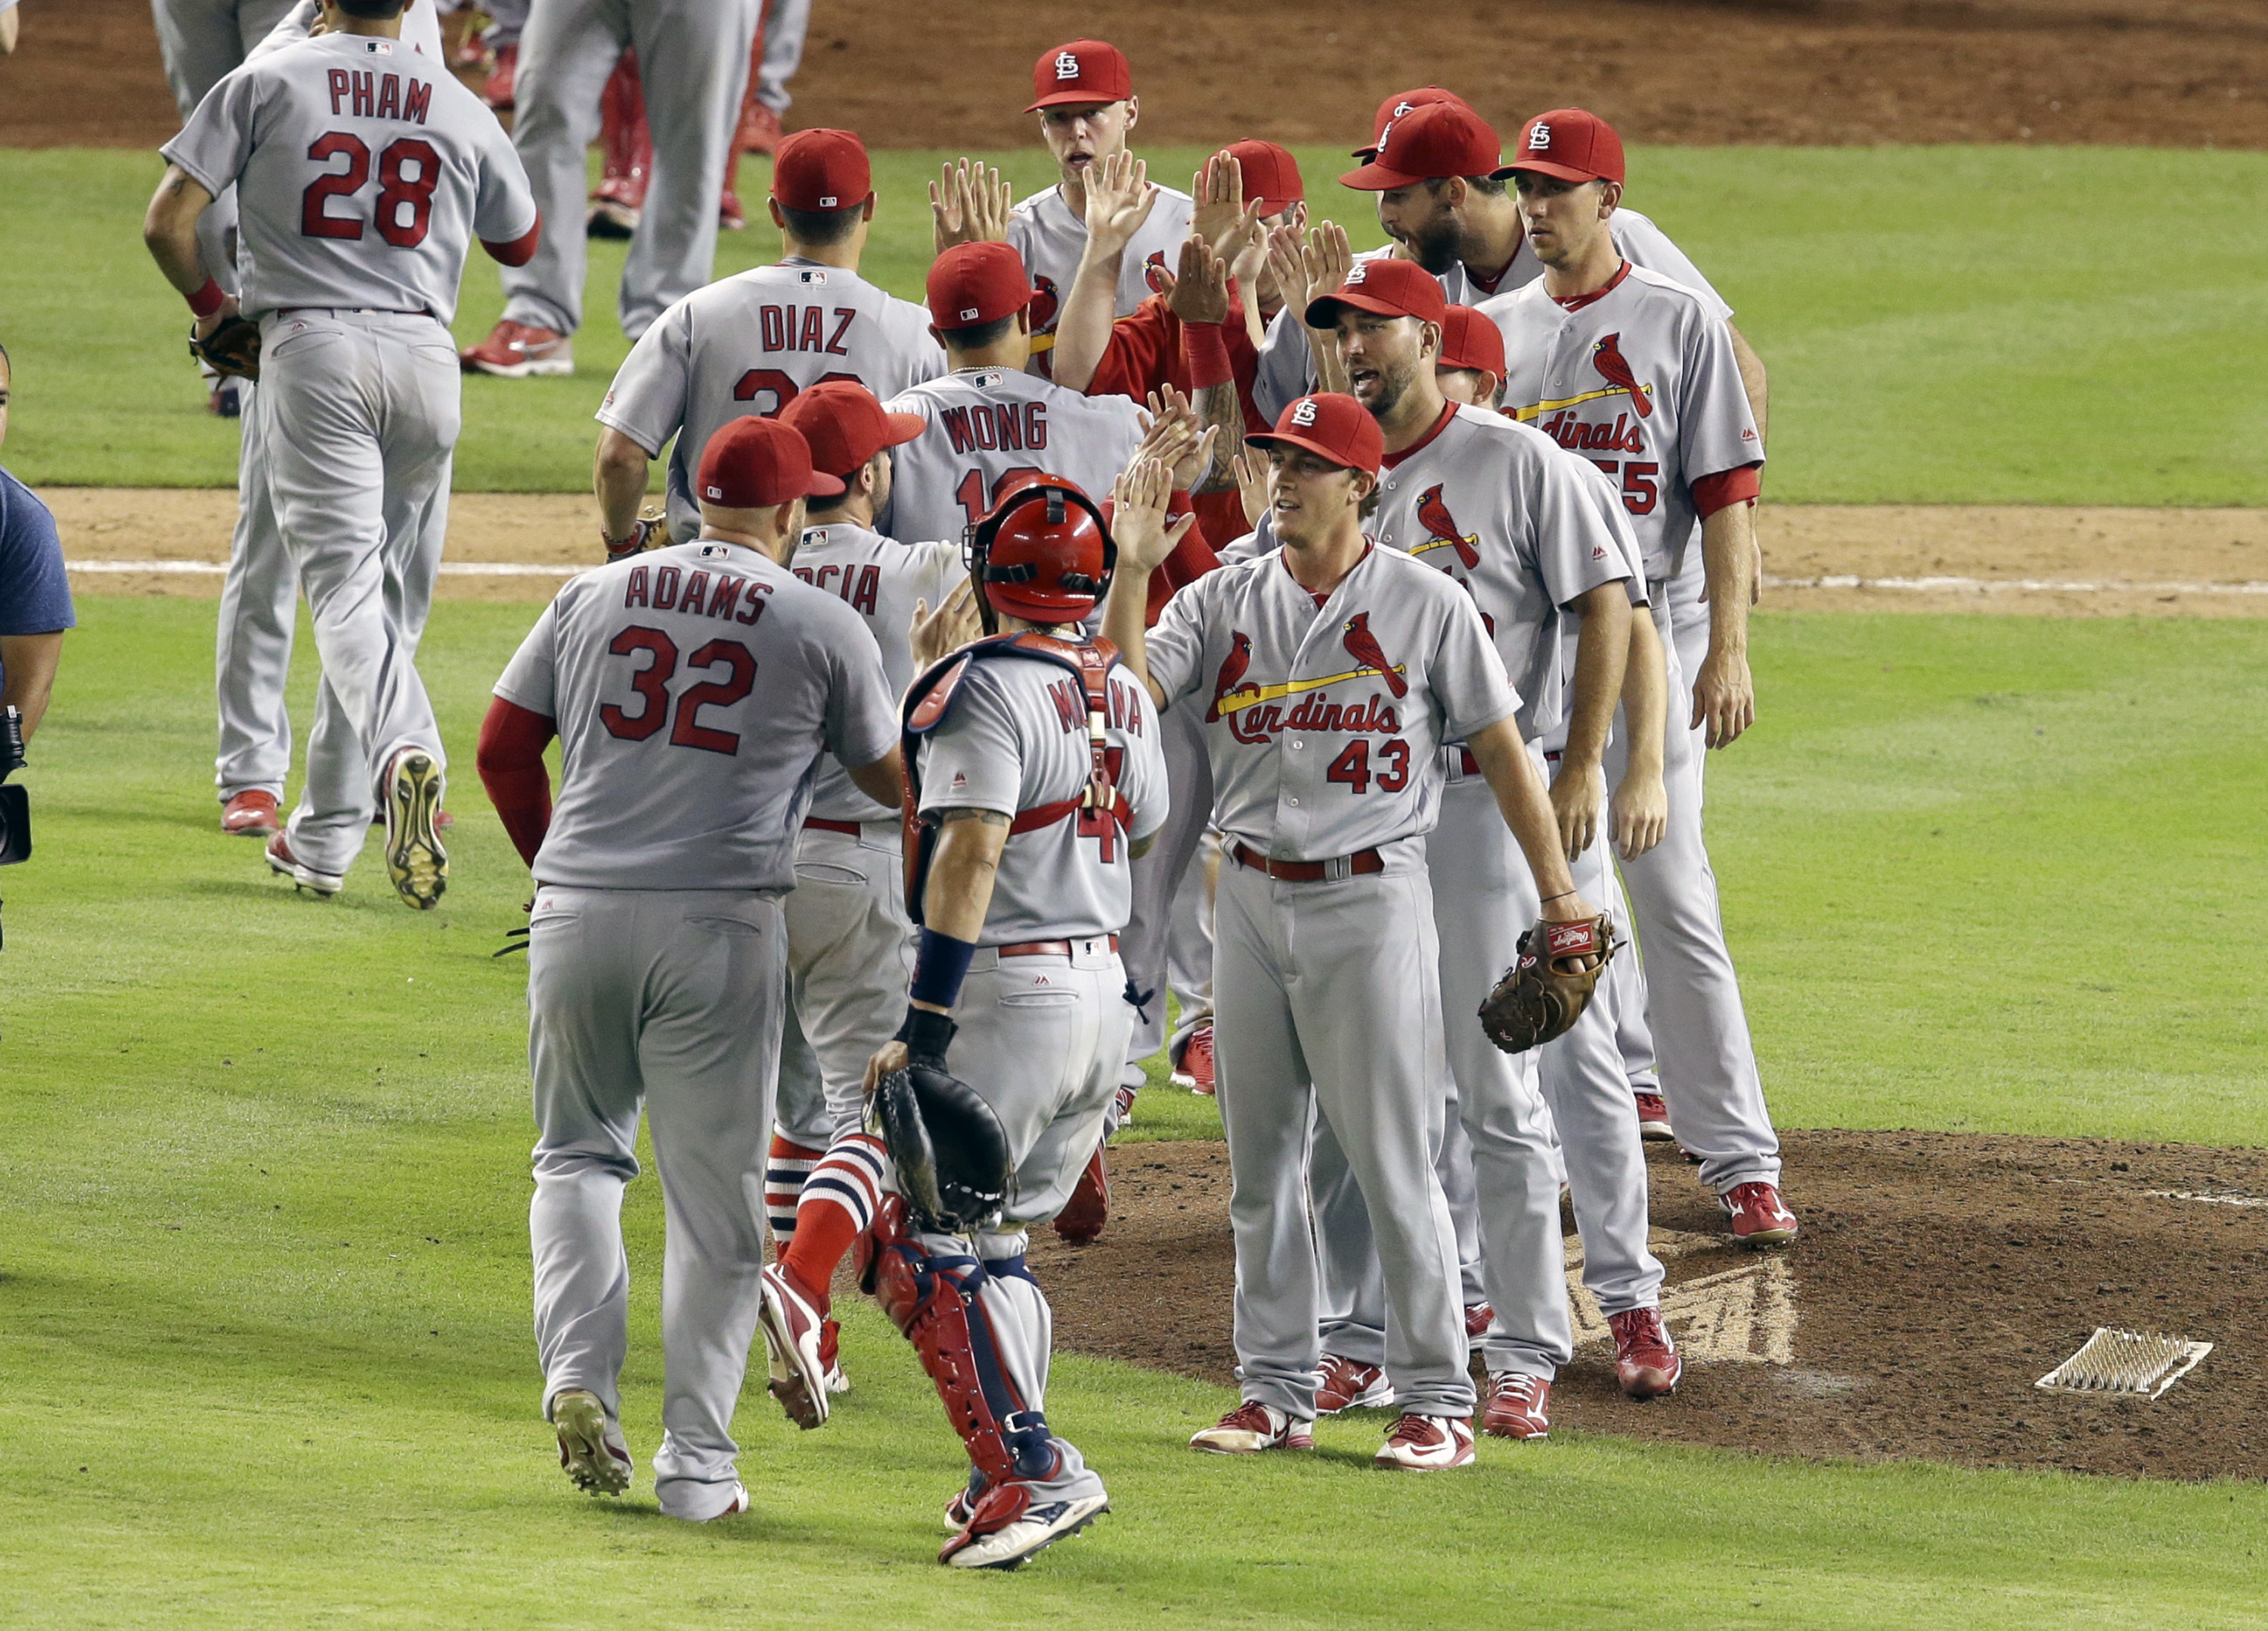 St. Louis Cardinals relief pitcher Seth Maness (43) high-fives teammates after they defeated the Miami Marlins in a baseball game, Friday, July 29, 2016, in Miami. (AP Photo/Lynne Sladky)